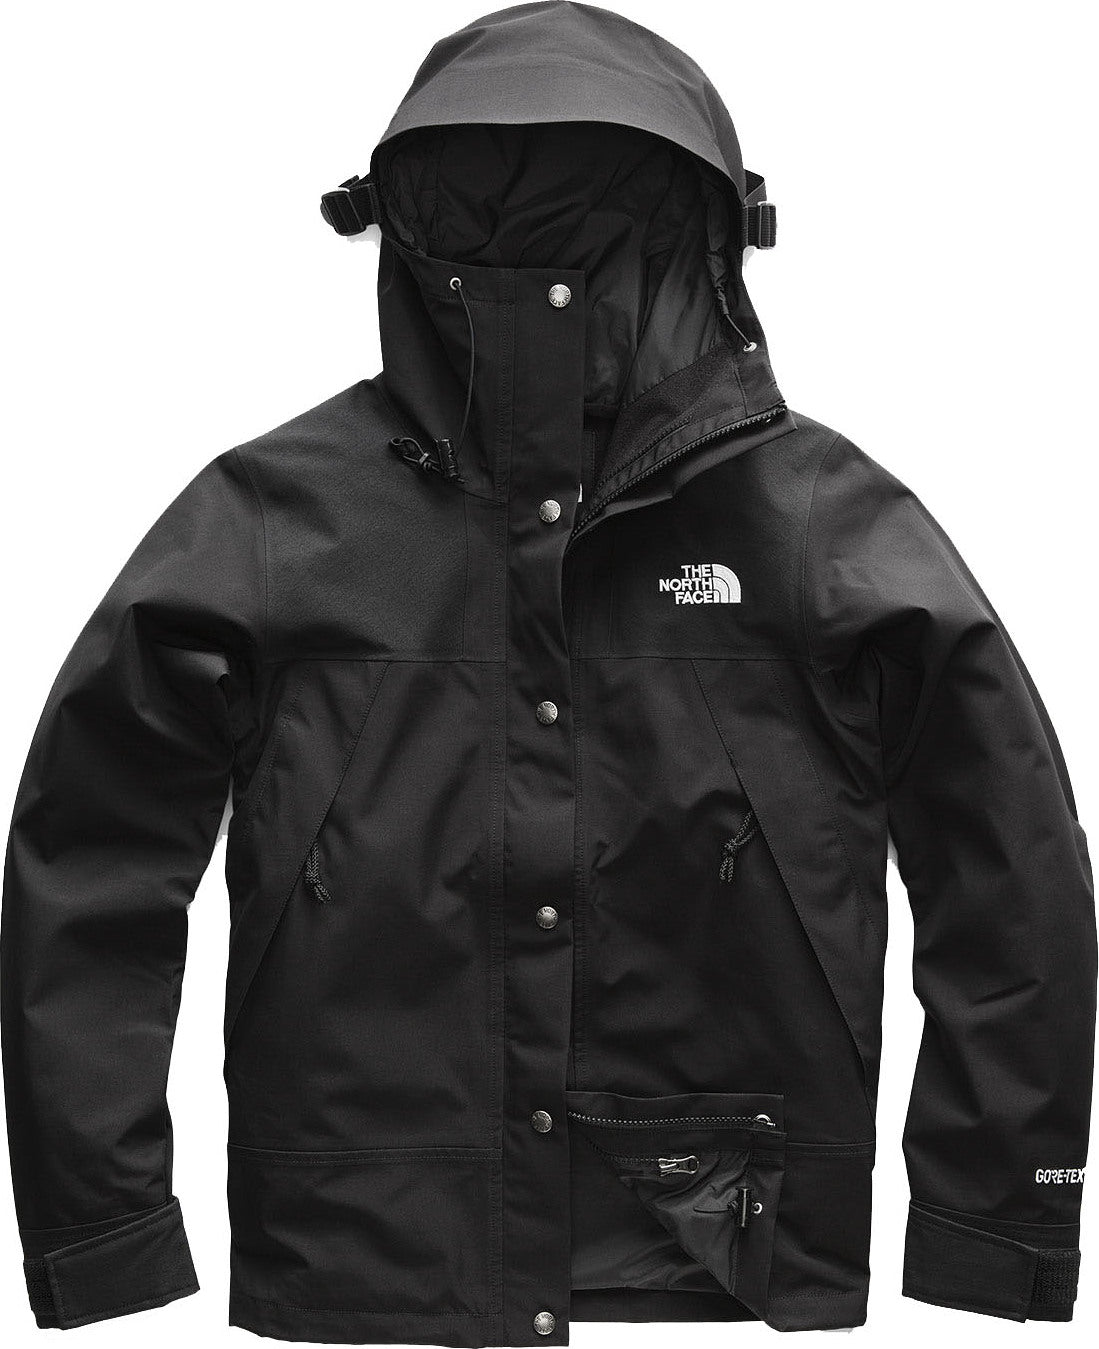 91ca385d048c9b The North Face Women's 1990 Mountain Jacket Gtx®   Altitude Sports